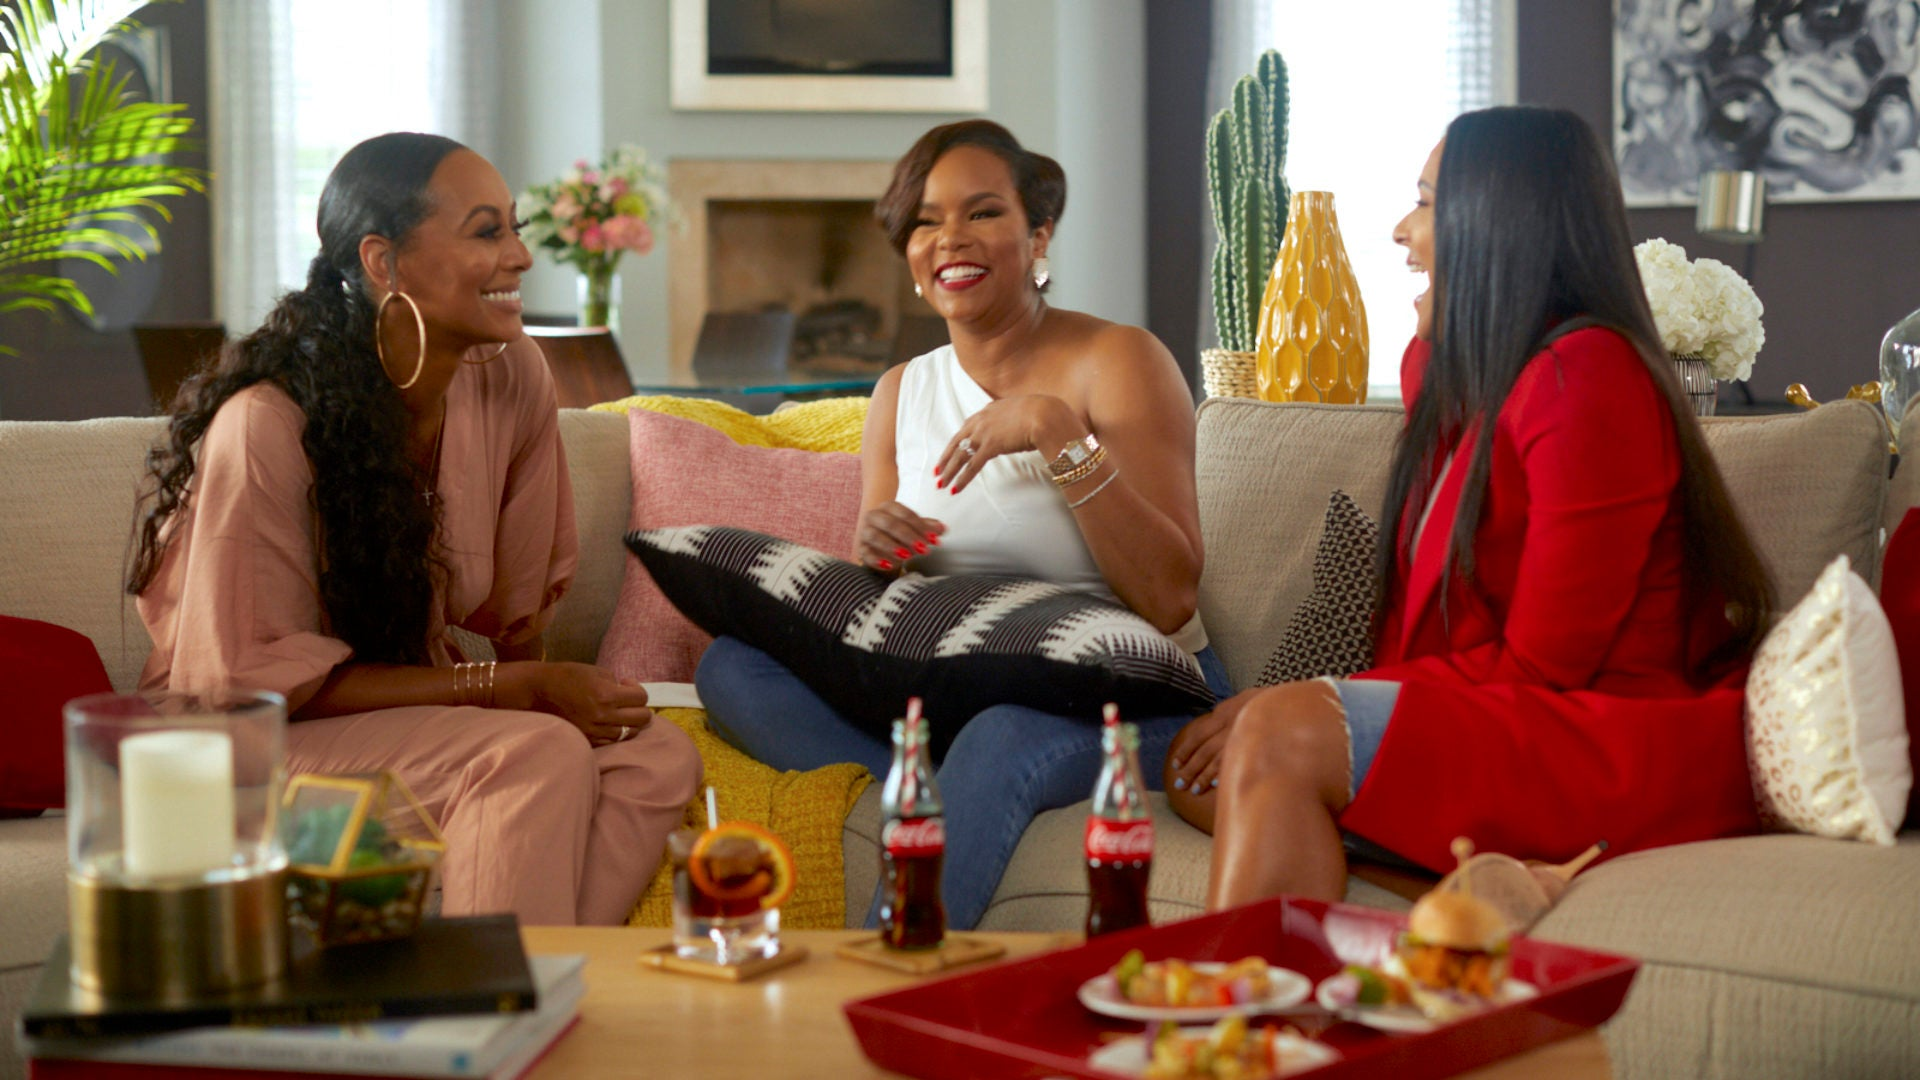 Watch Now: If Not For My Girls Episode 2 Black Women Celebrating and Supporting Each Other